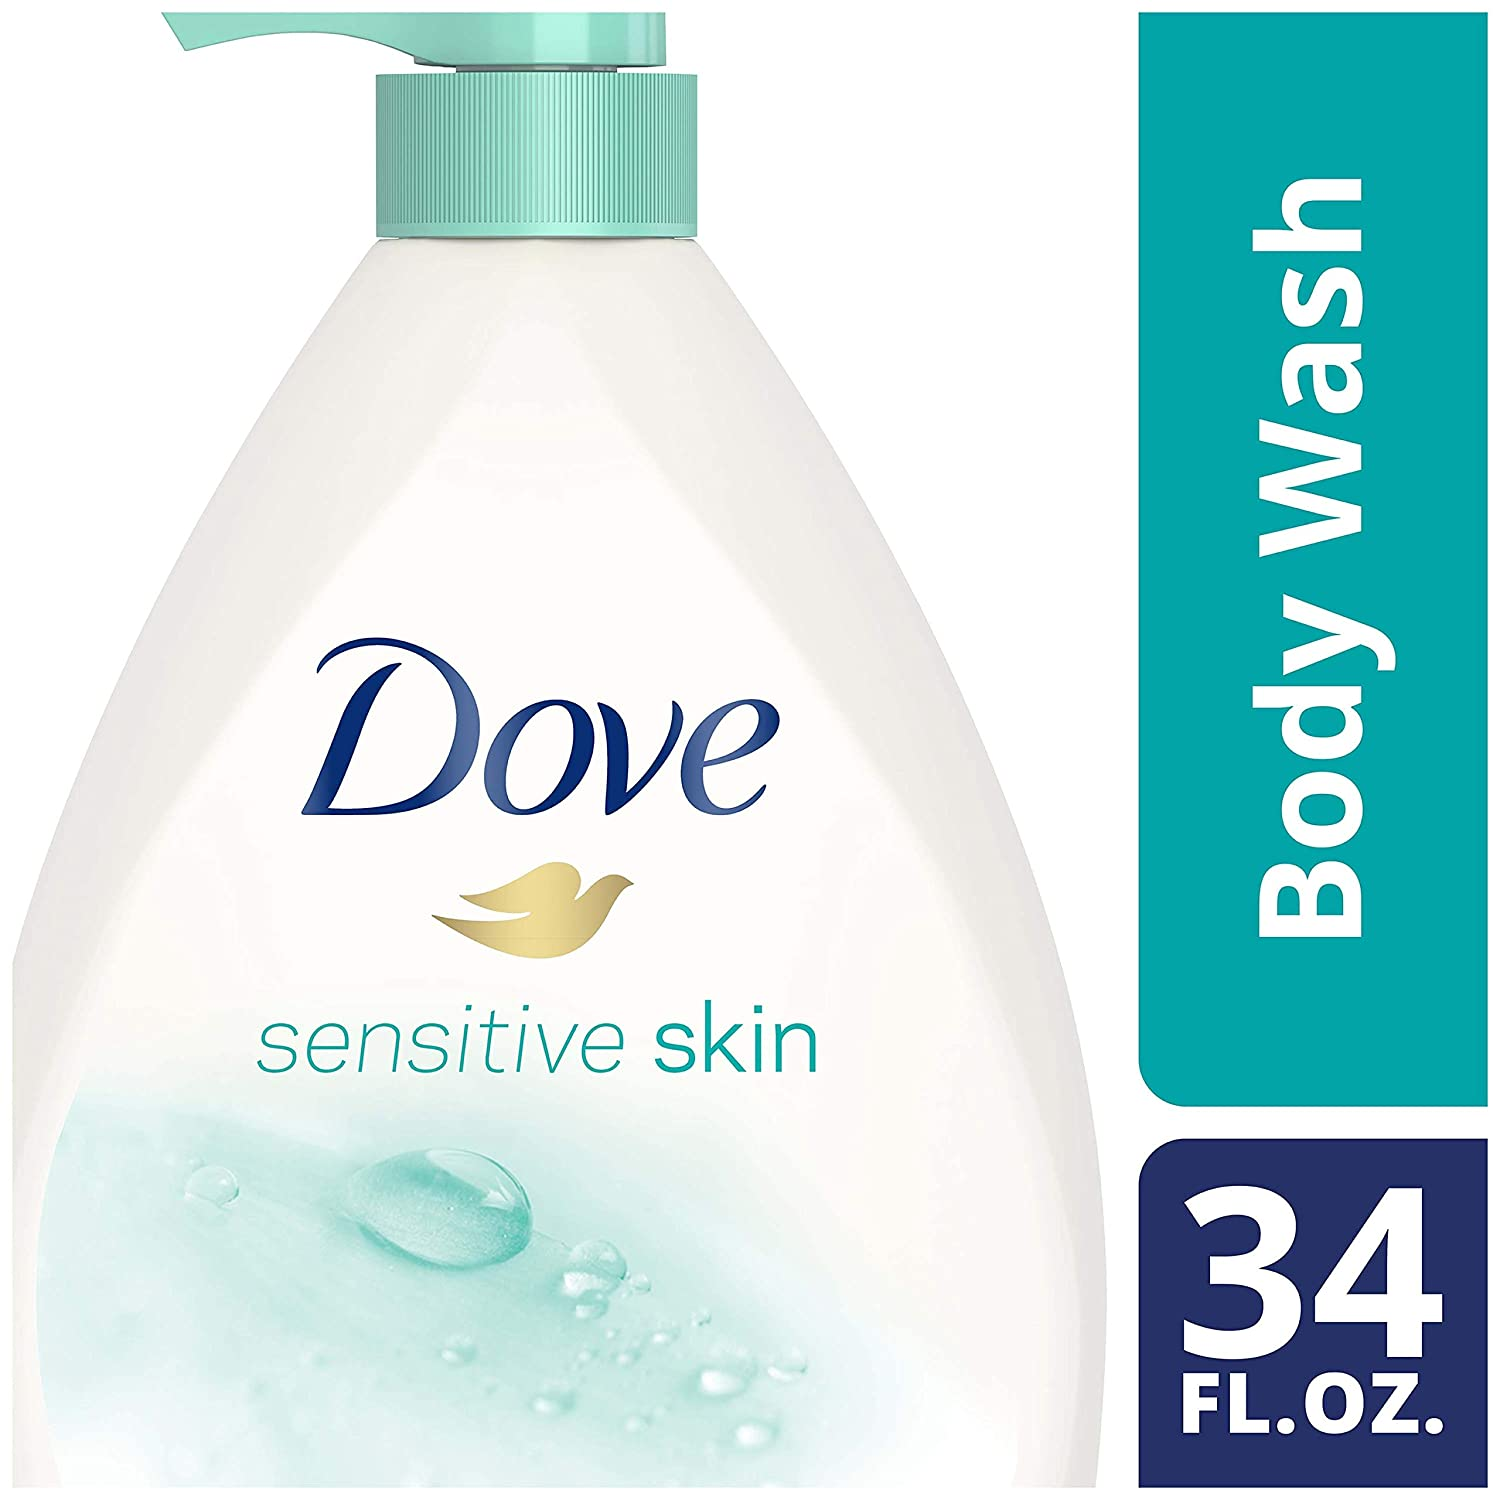 Dove go fresh Body Wash Cucumber and Green Tea 22 oz, Pack of 4 10011111229096